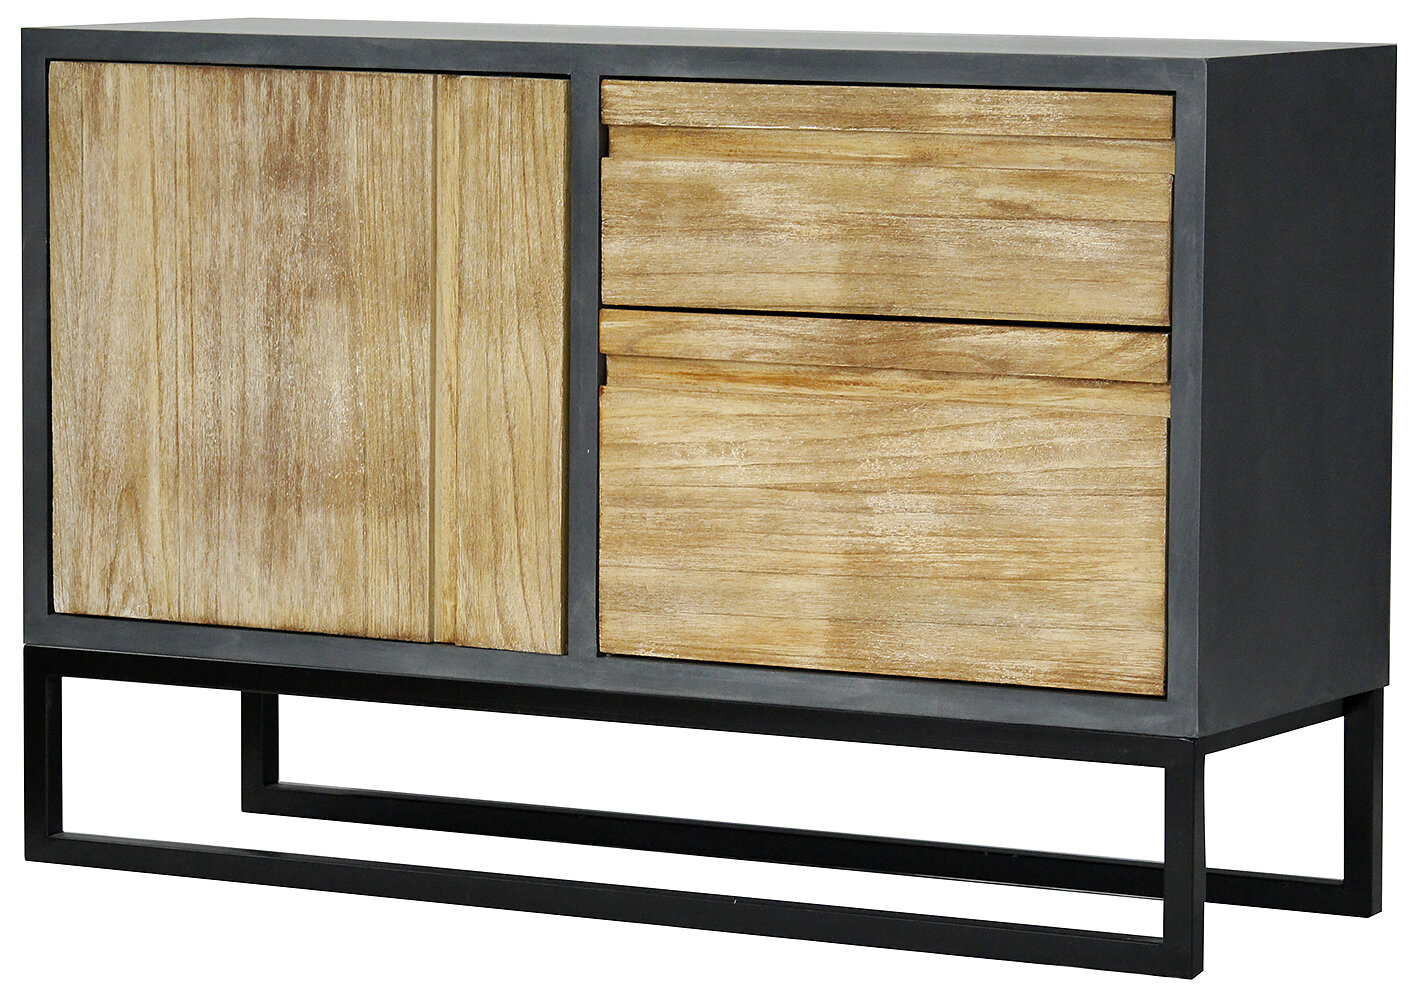 Modern Trent Austin Design Sideboards + Buffets | Allmodern Throughout Casolino Sideboards (View 22 of 30)